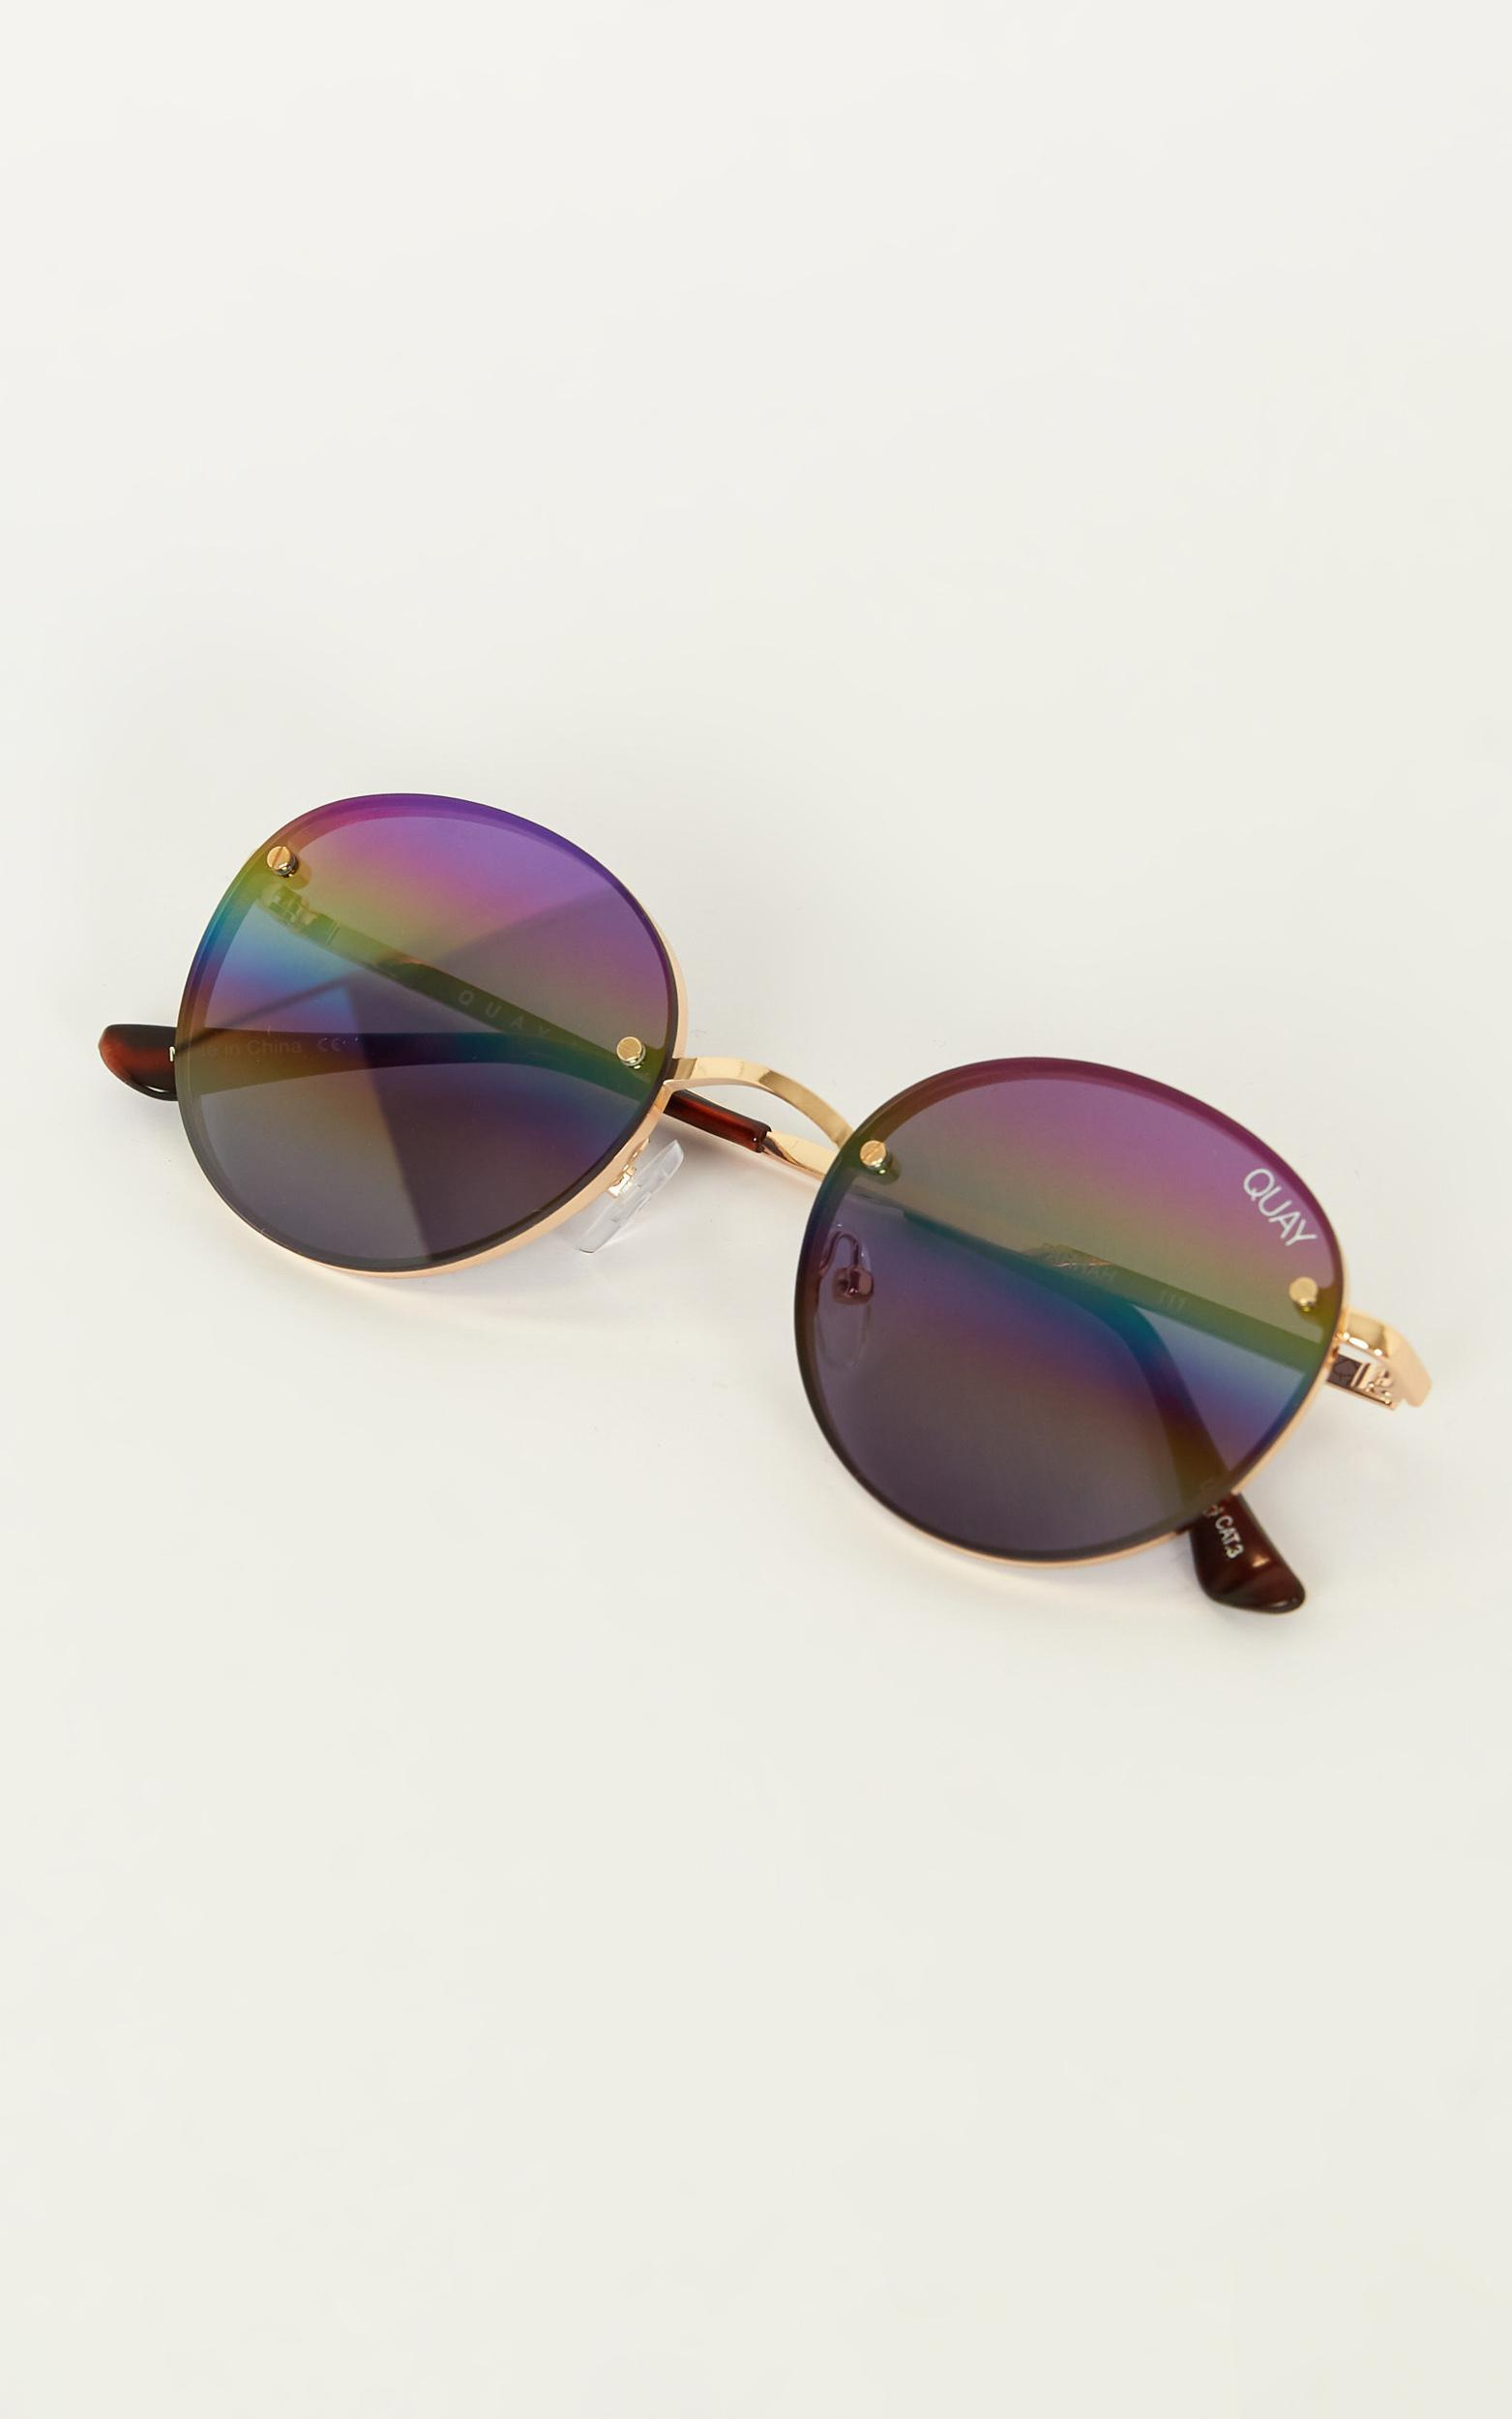 Quay - Farrah Sunglasses In Gold And Purple Rainbow, Gold, hi-res image number null